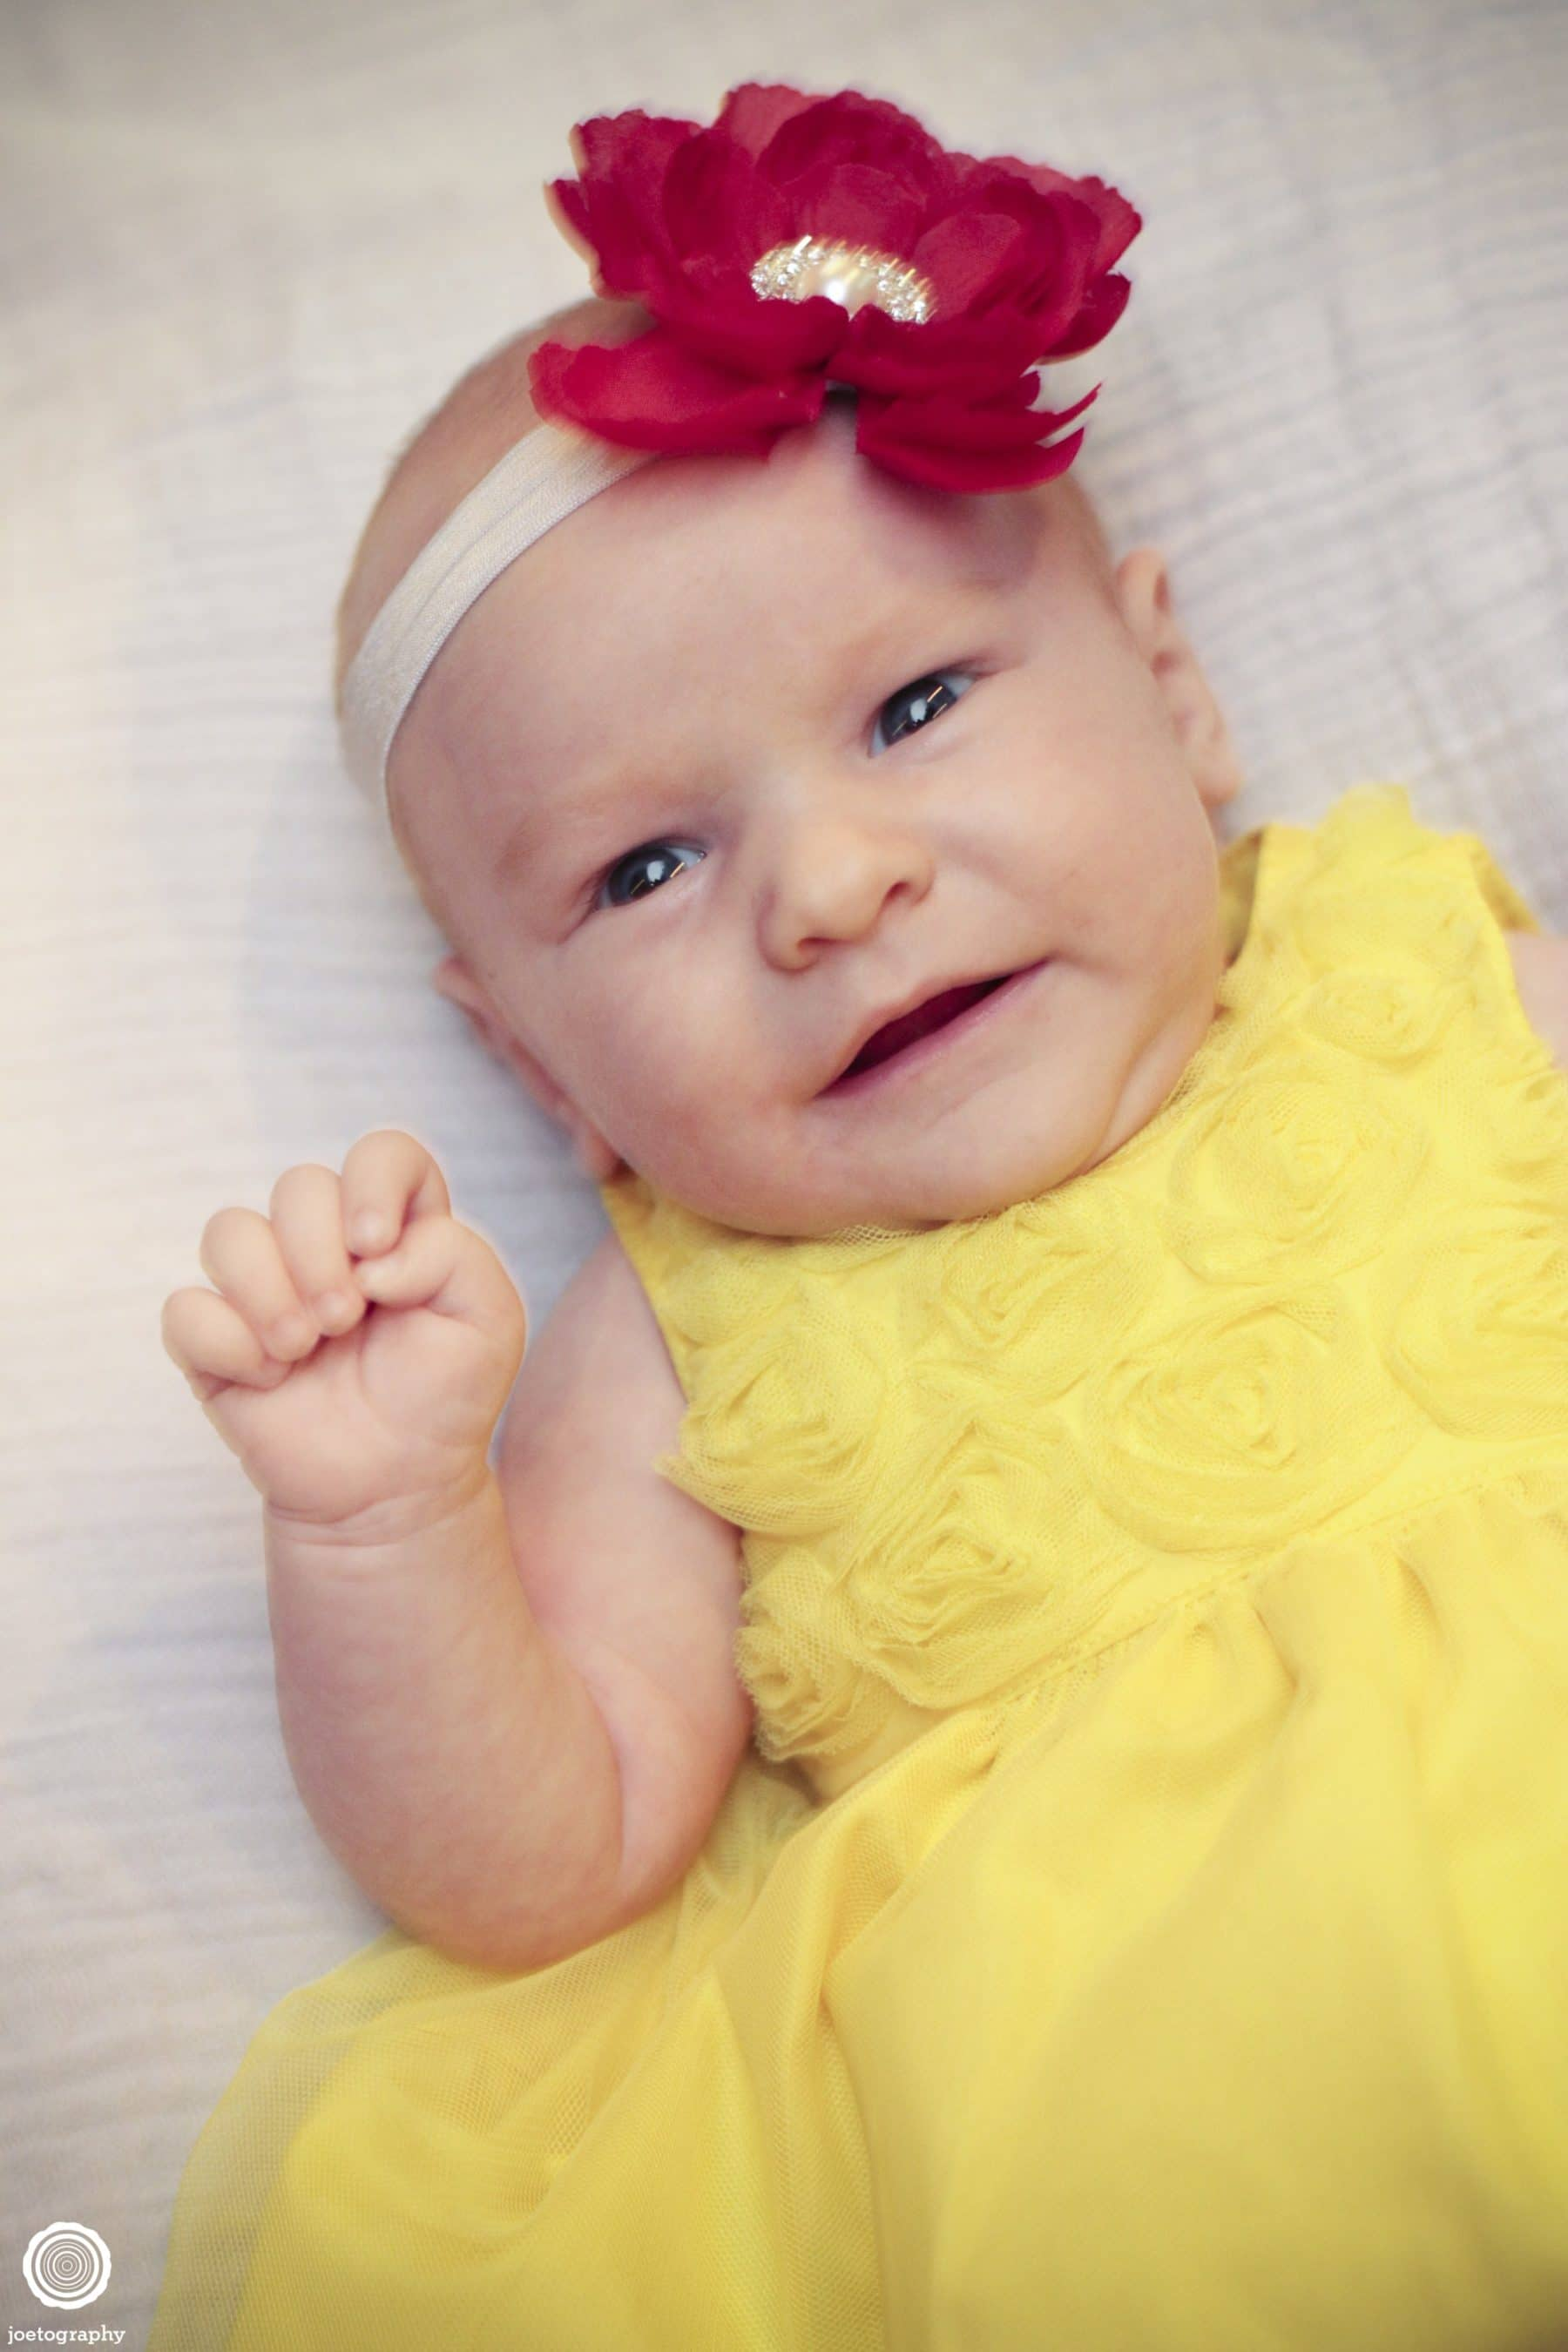 new-addition-baby-newborn-photography-94